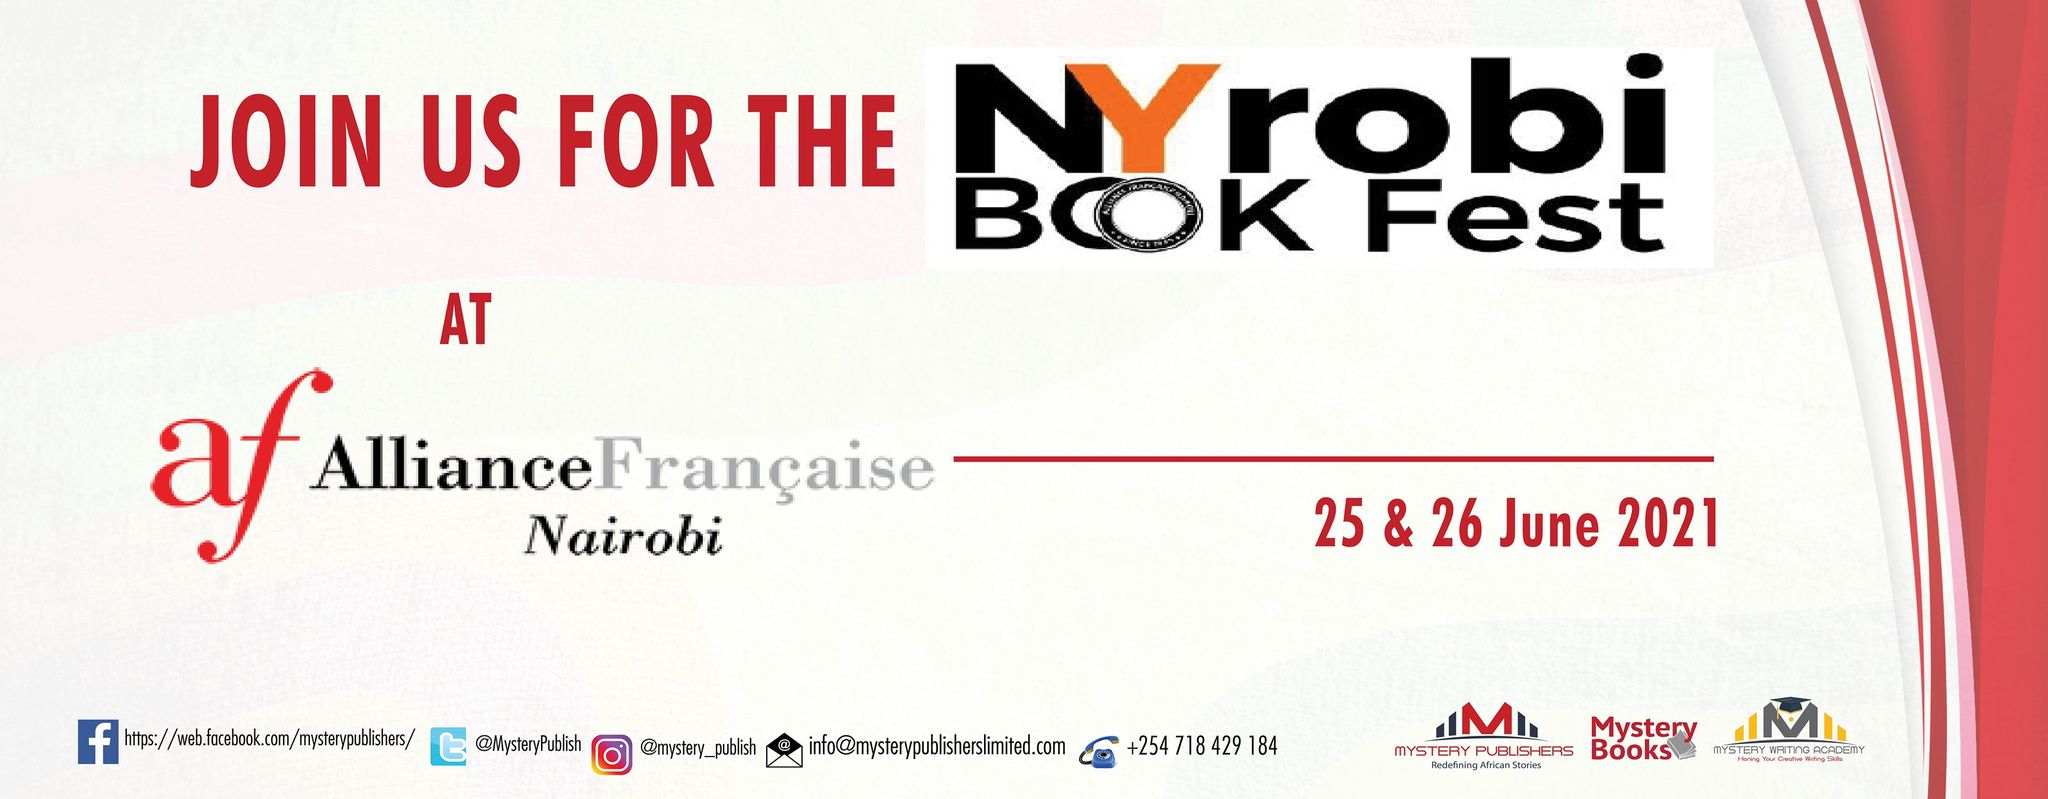 NYrobi Book Fest for Kenyan Books and Authors